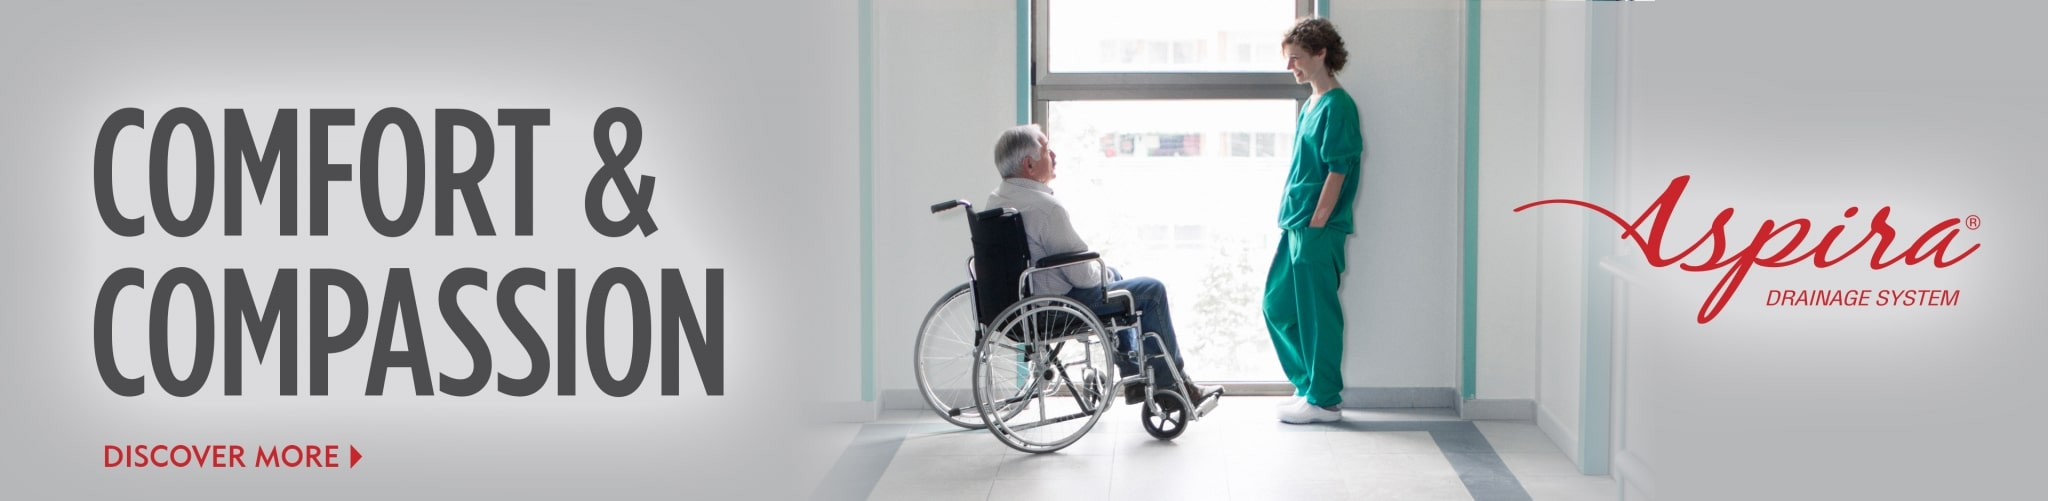 Comfort and Compassion for Your Patients - Aspira Drainage Systems - Merit Medical